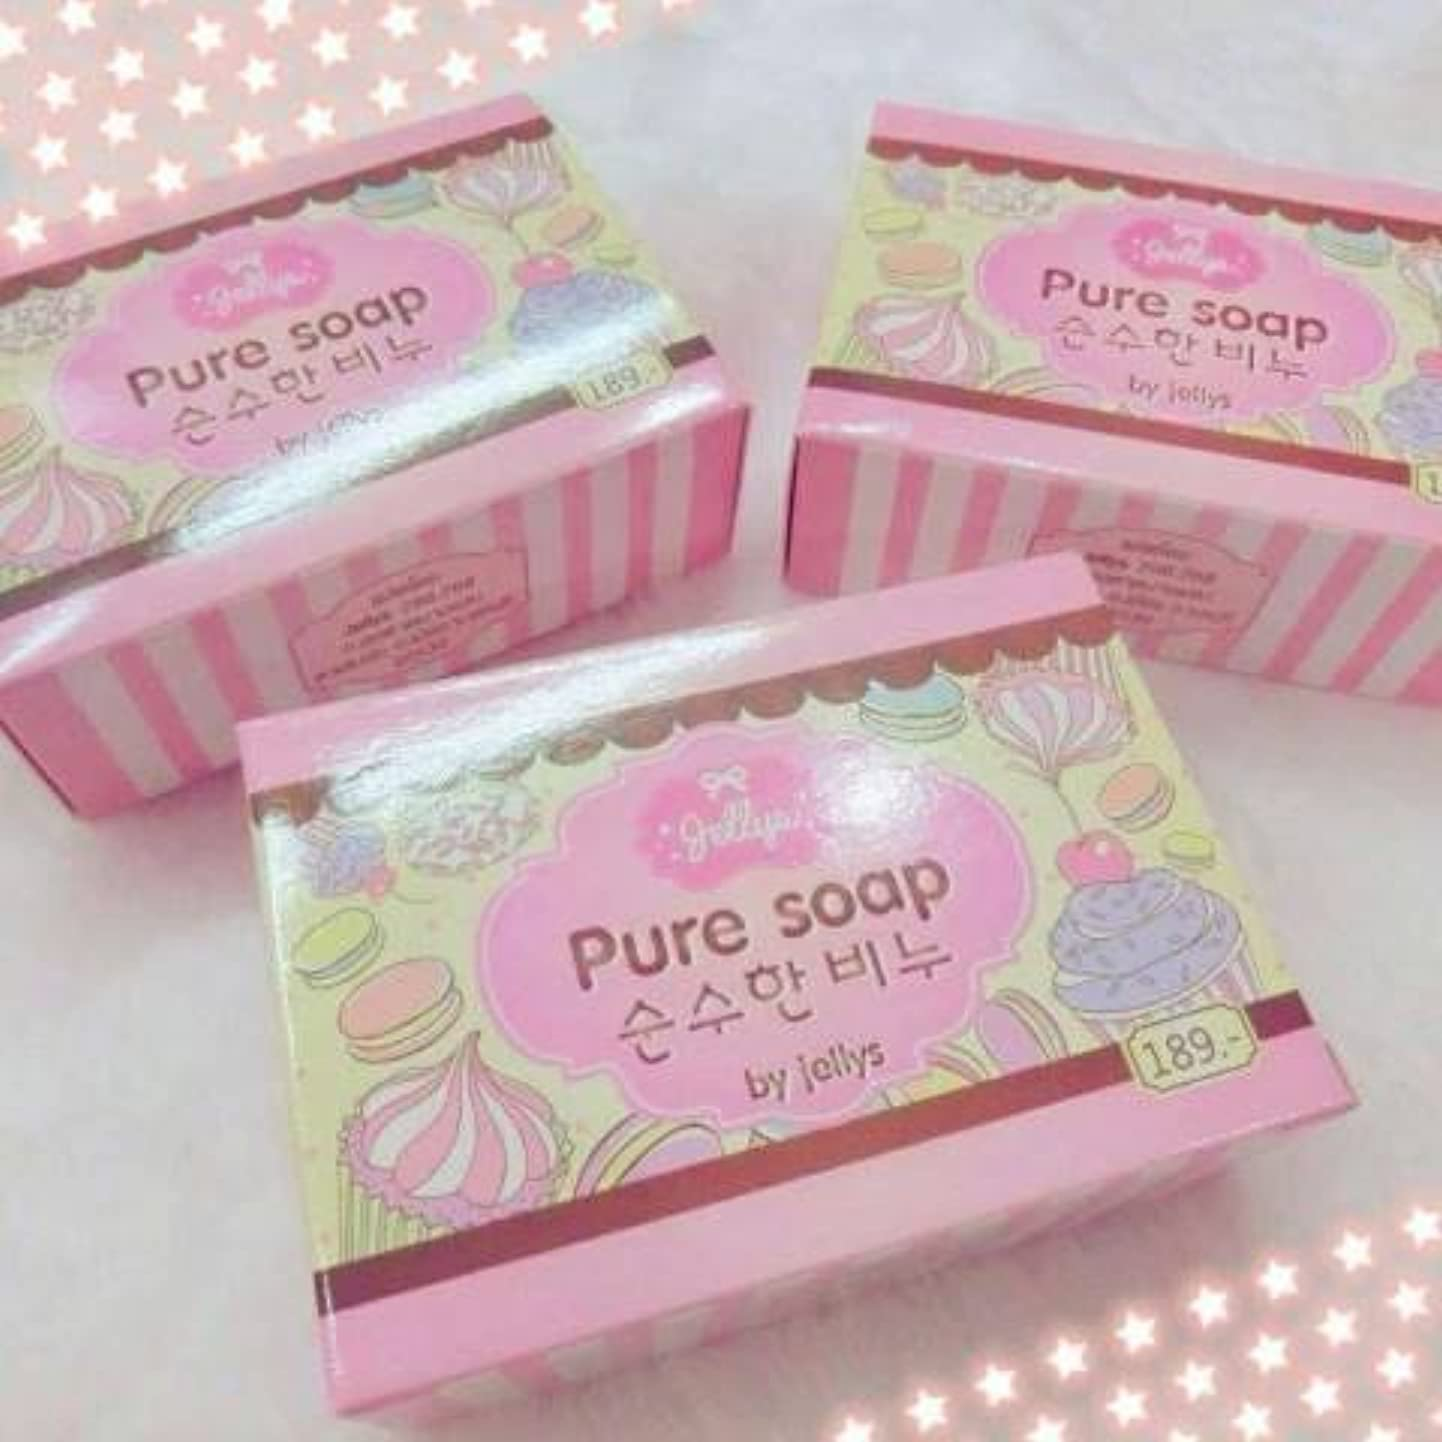 競合他社選手遠征遠洋のPure Soap By Jellys 100% Pure White Jelly Soap. Whitening Soap. 100 g.